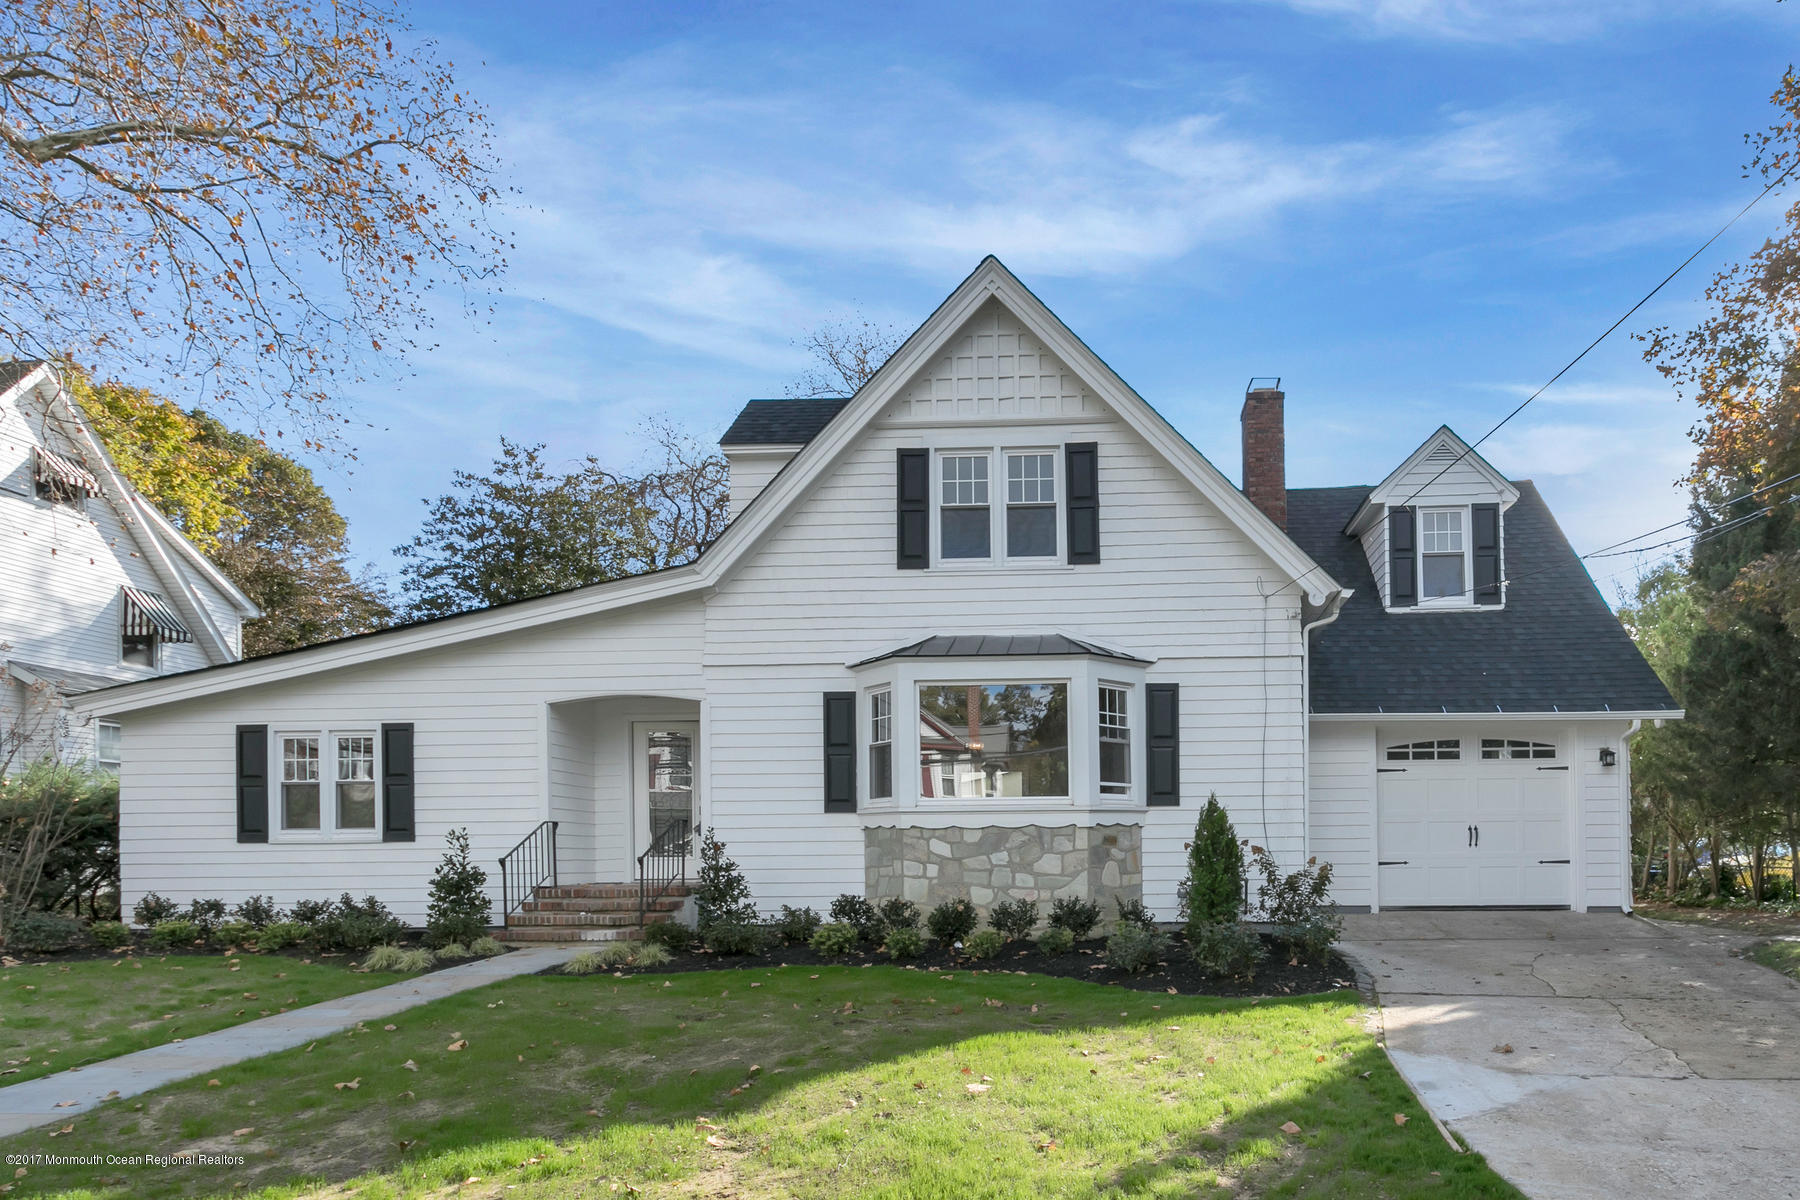 59 LEROY PLACE, RED BANK, NJ 07701